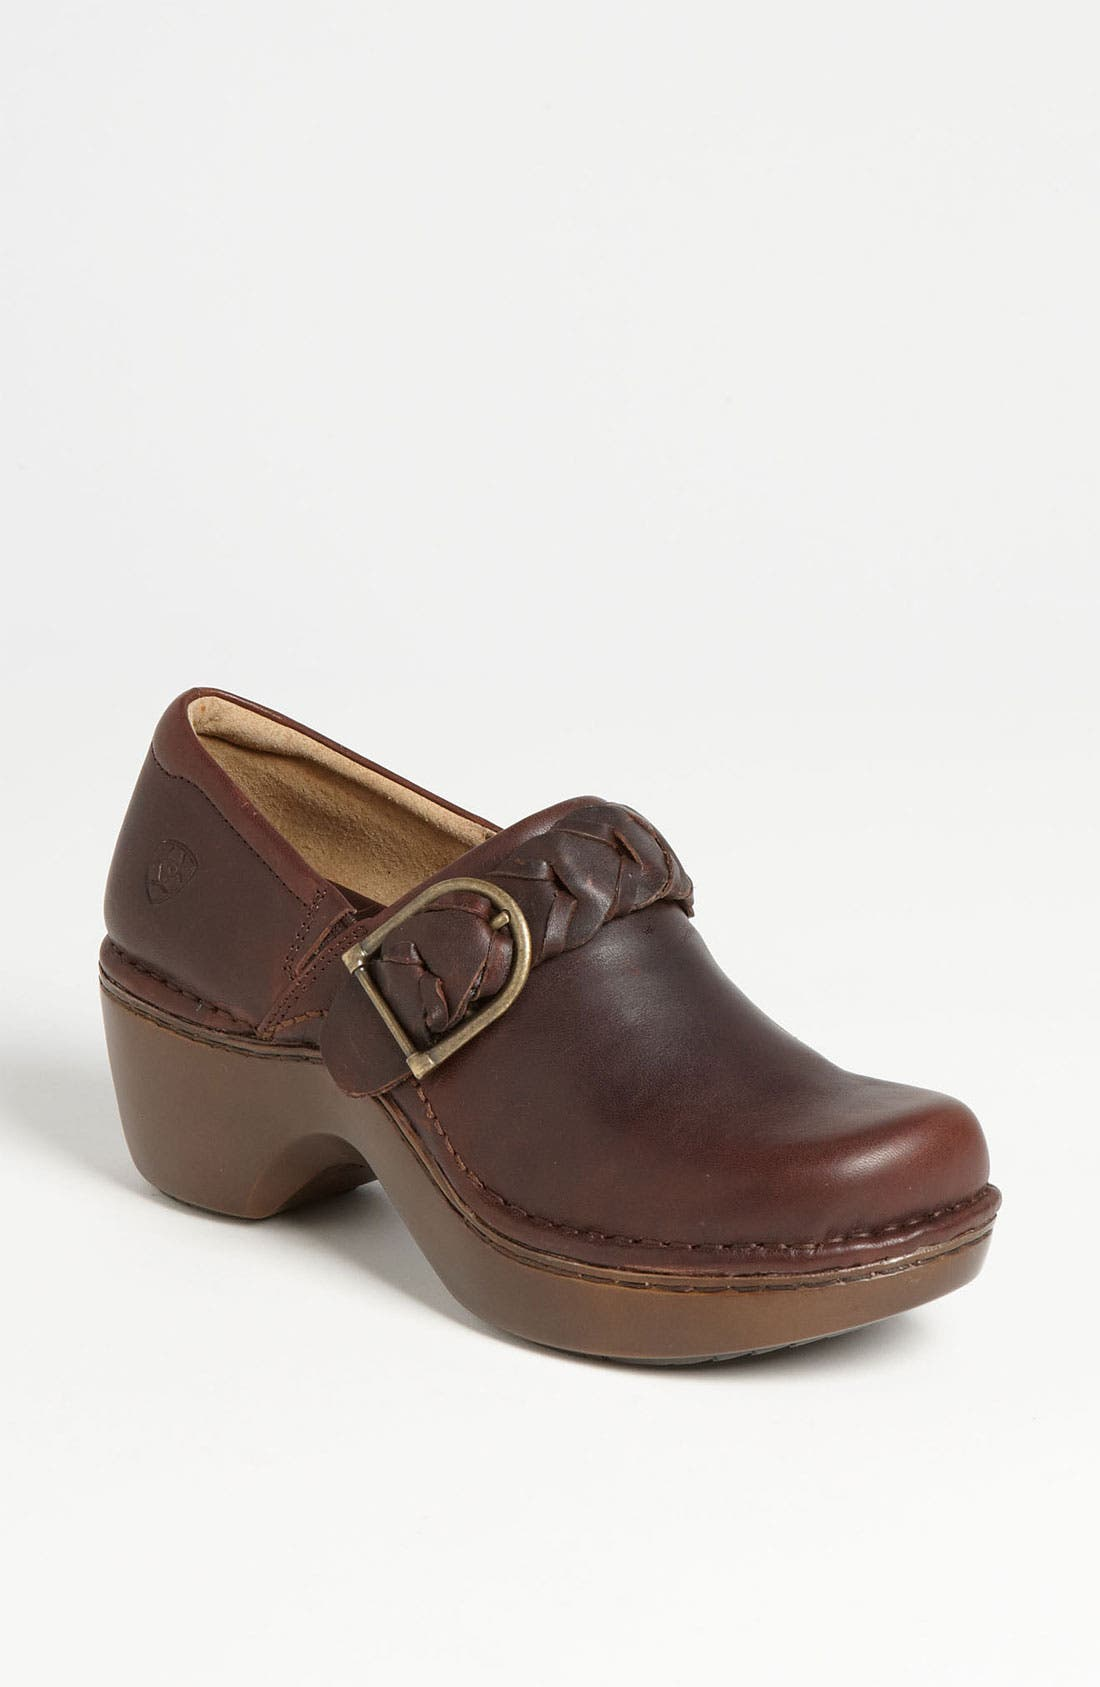 Alternate Image 1 Selected - Ariat 'Amy' Clog